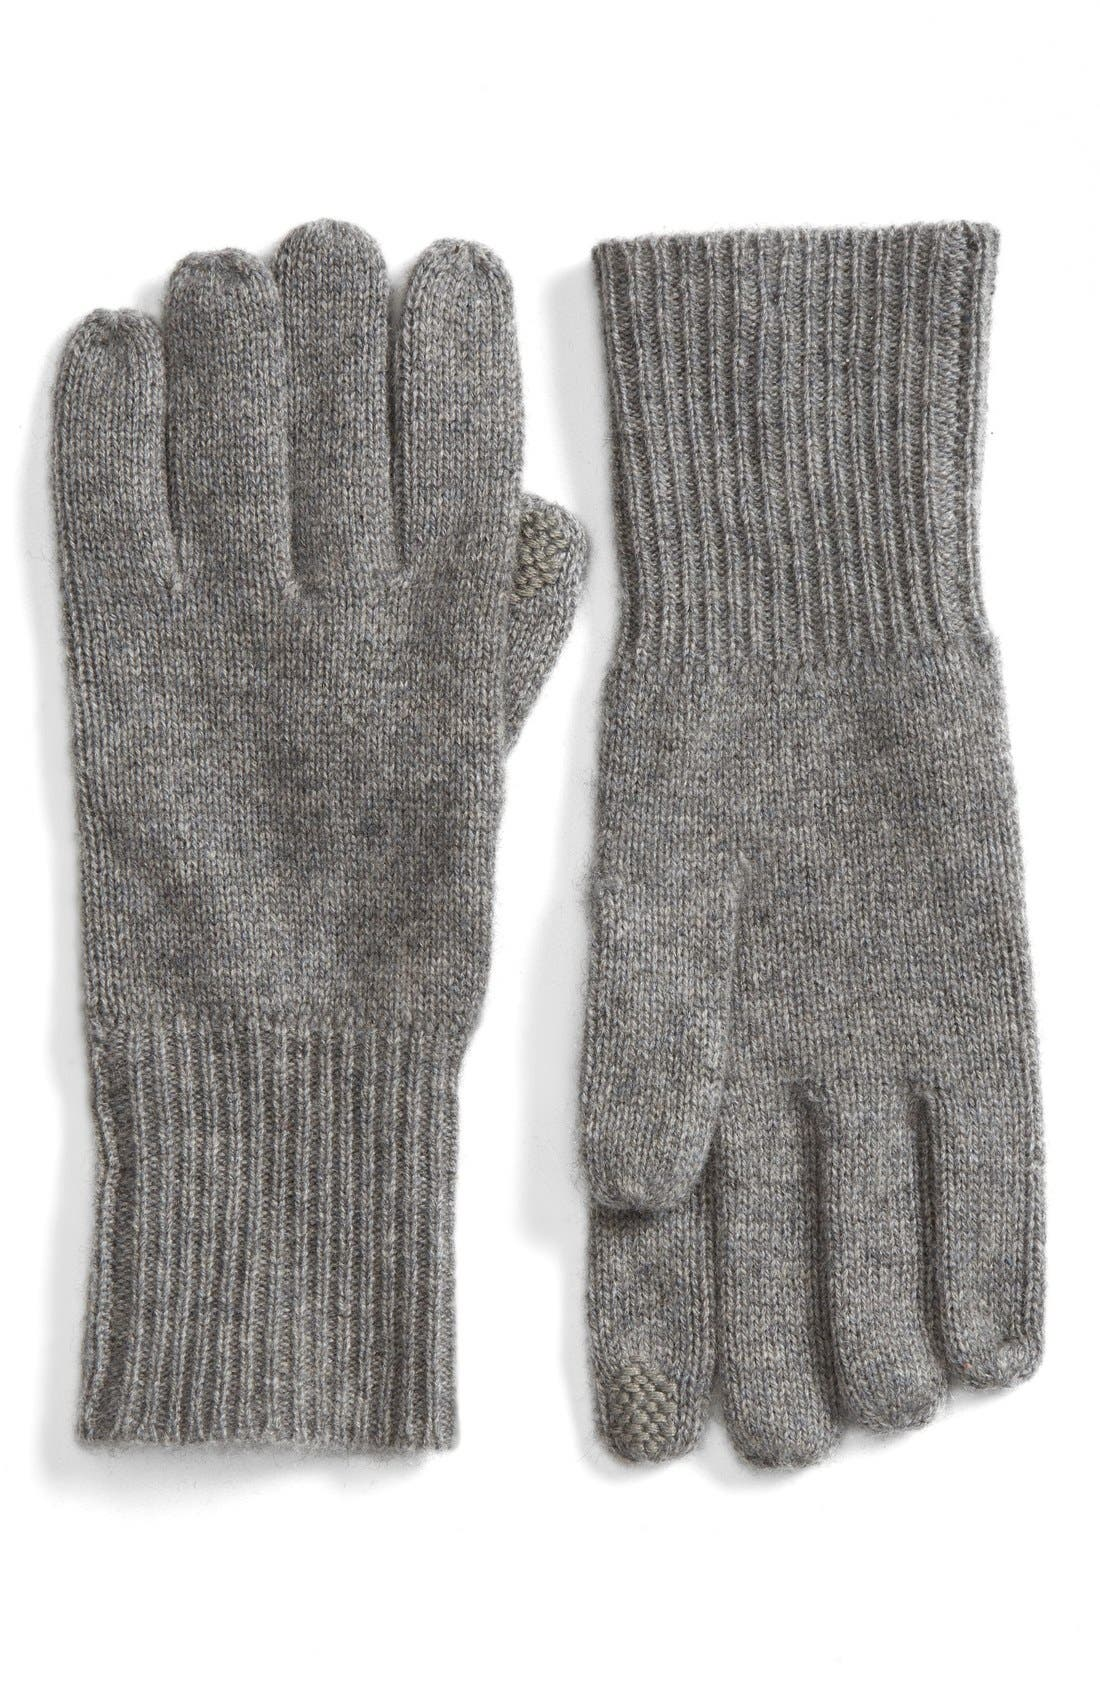 Rib Knit Cashmere Gloves,                             Main thumbnail 1, color,                             Grey Medium Heather